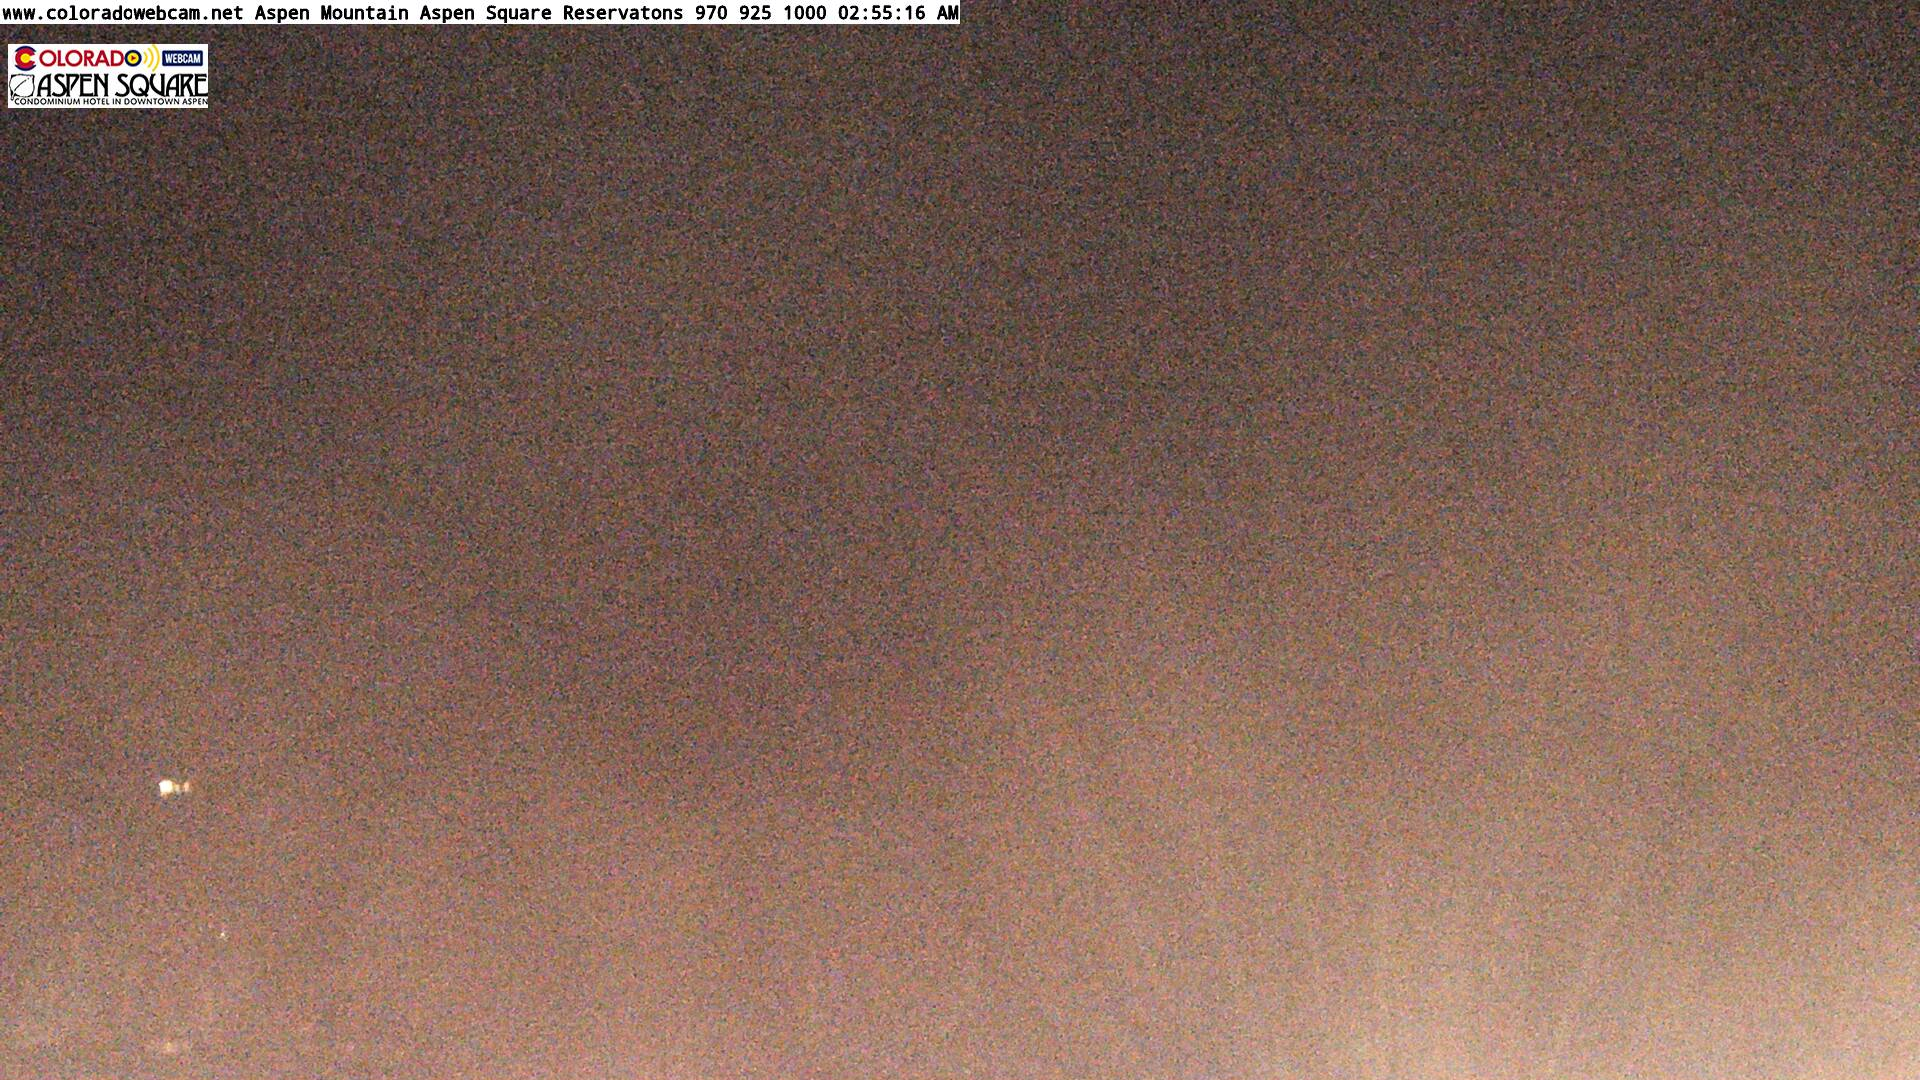 Webcam Aspen Snowmass